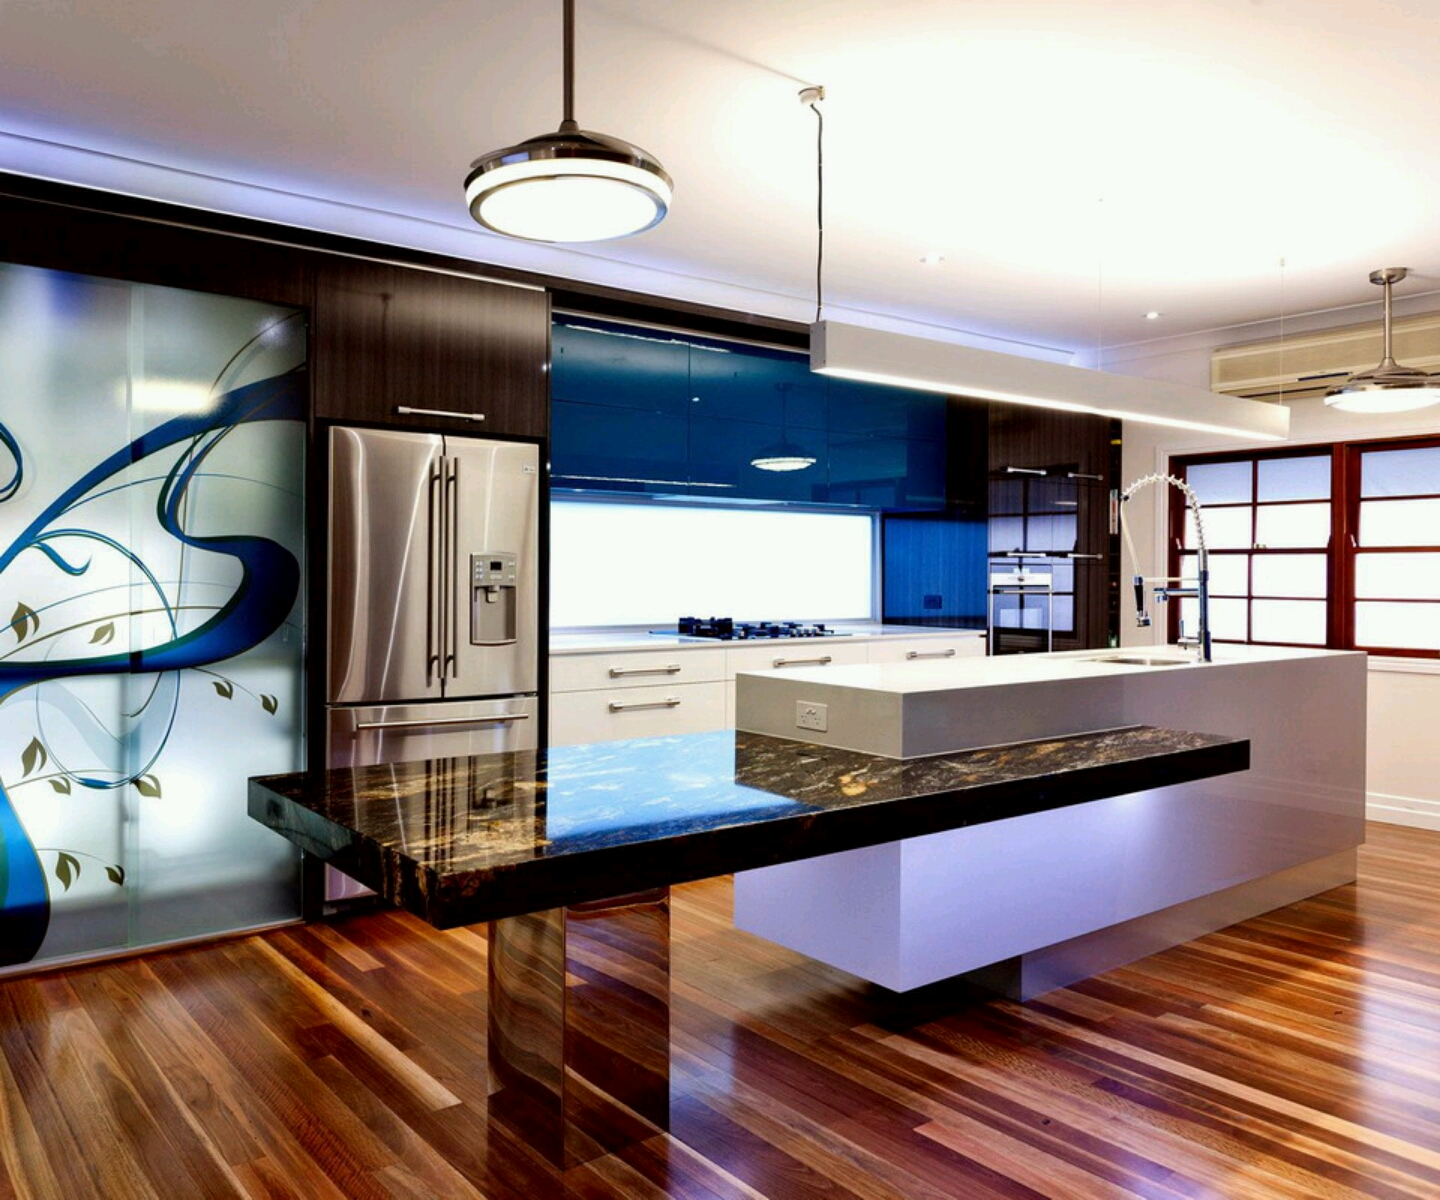 New home designs latest.: Ultra modern kitchen designs ideas. on Modern Kitchen Design  id=87333